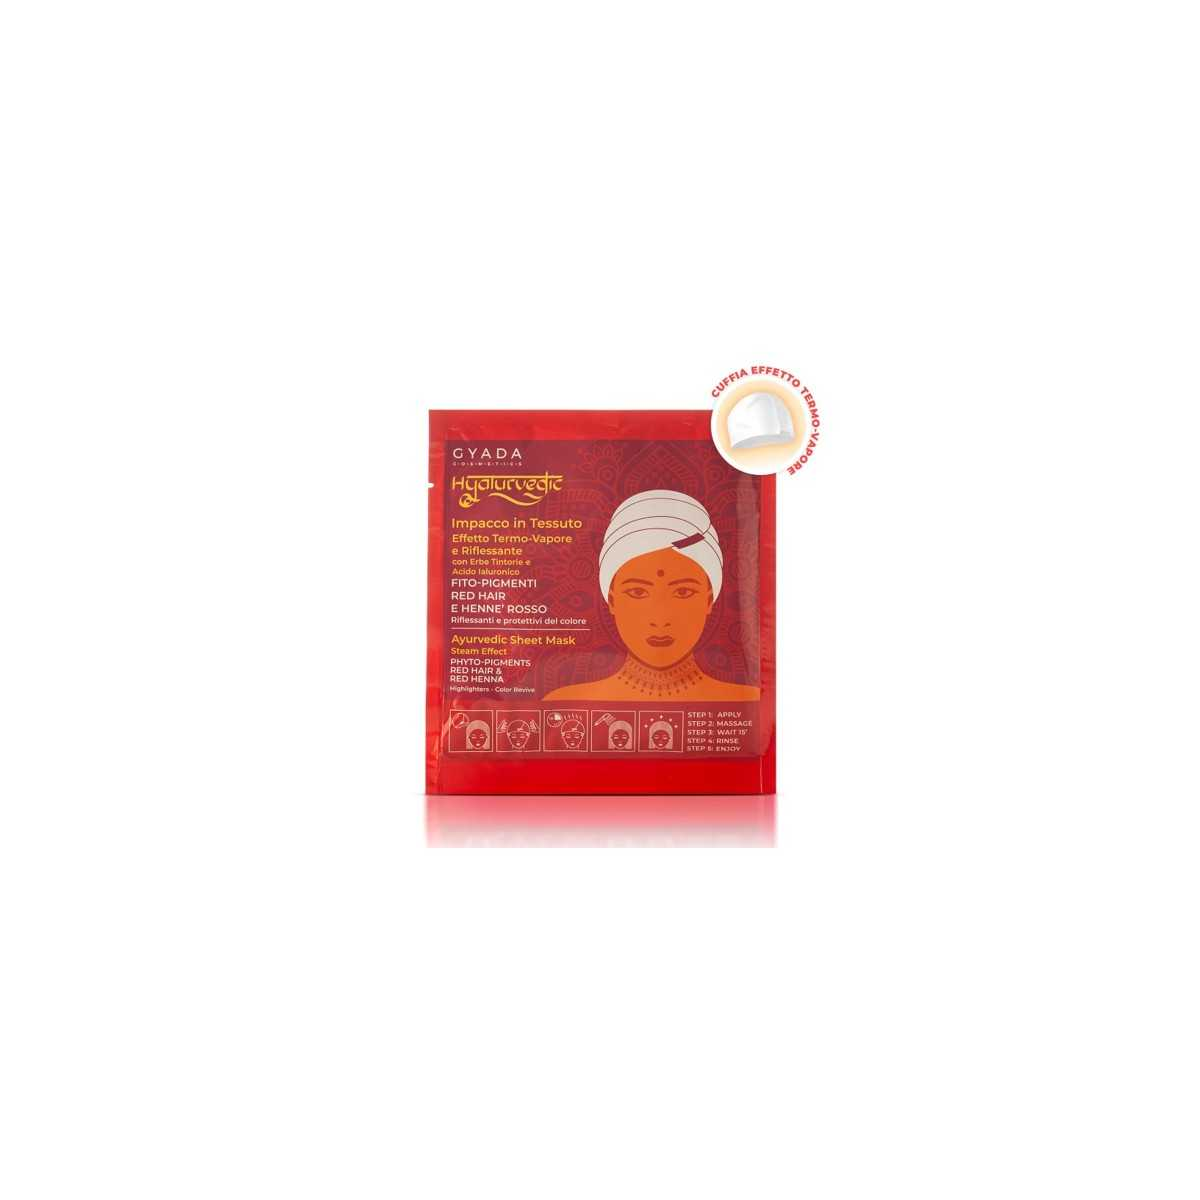 Hyalurvedic Red Hair Colour Shine Mask